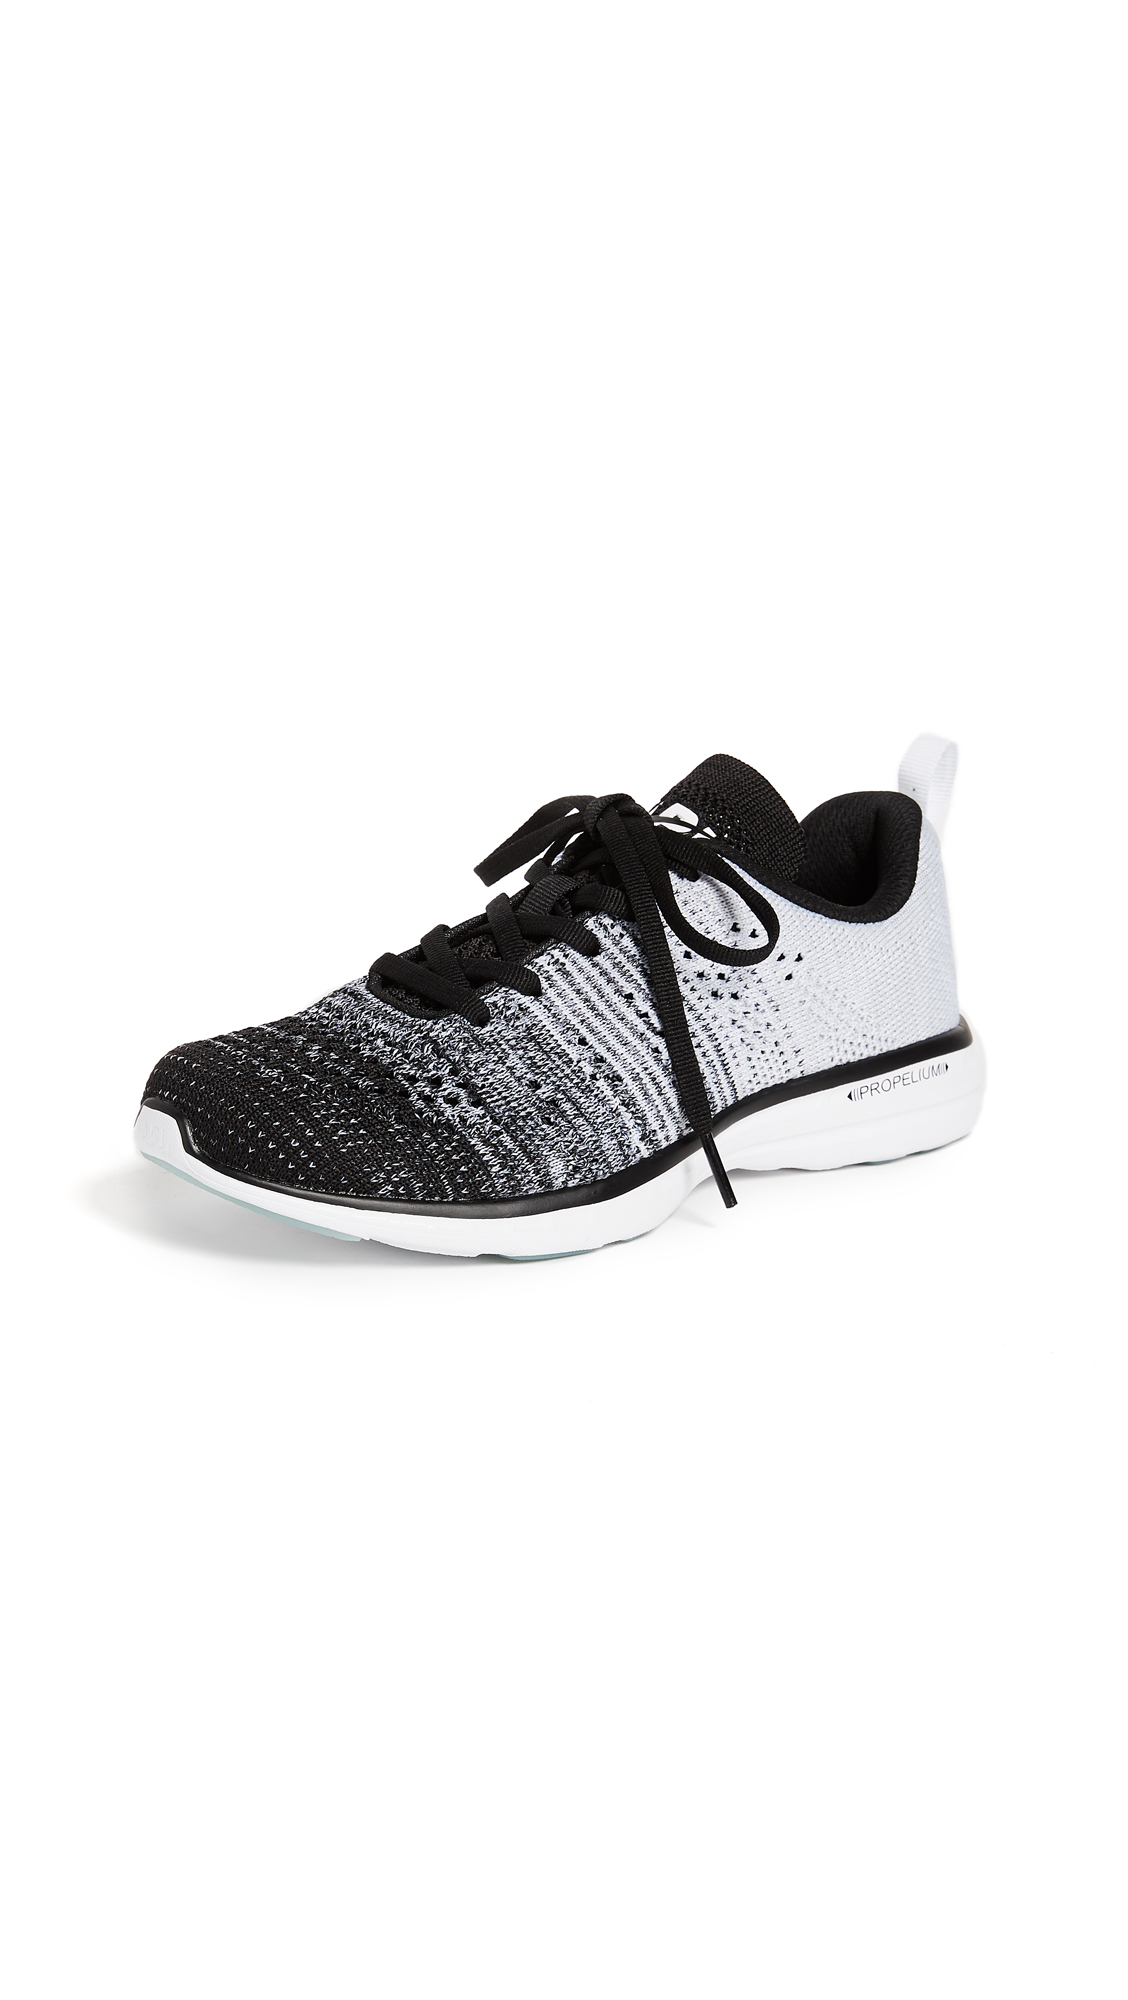 APL: Athletic Propulsion Labs TechLoom Pro Sneakers - Black/Heather Grey/White